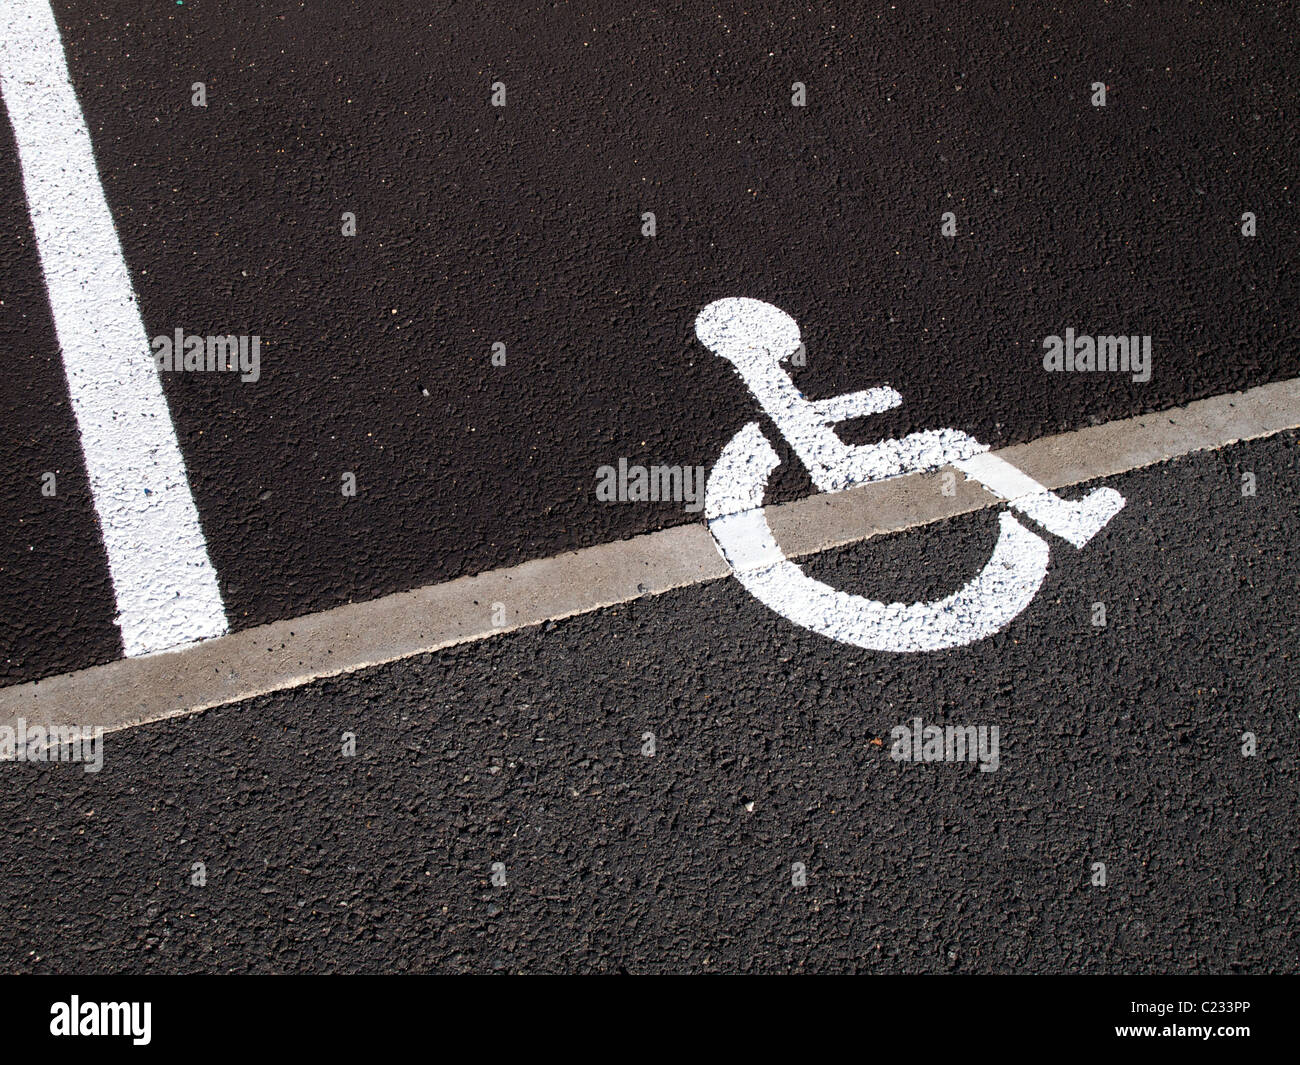 Parking space for disabled people - Stock Image